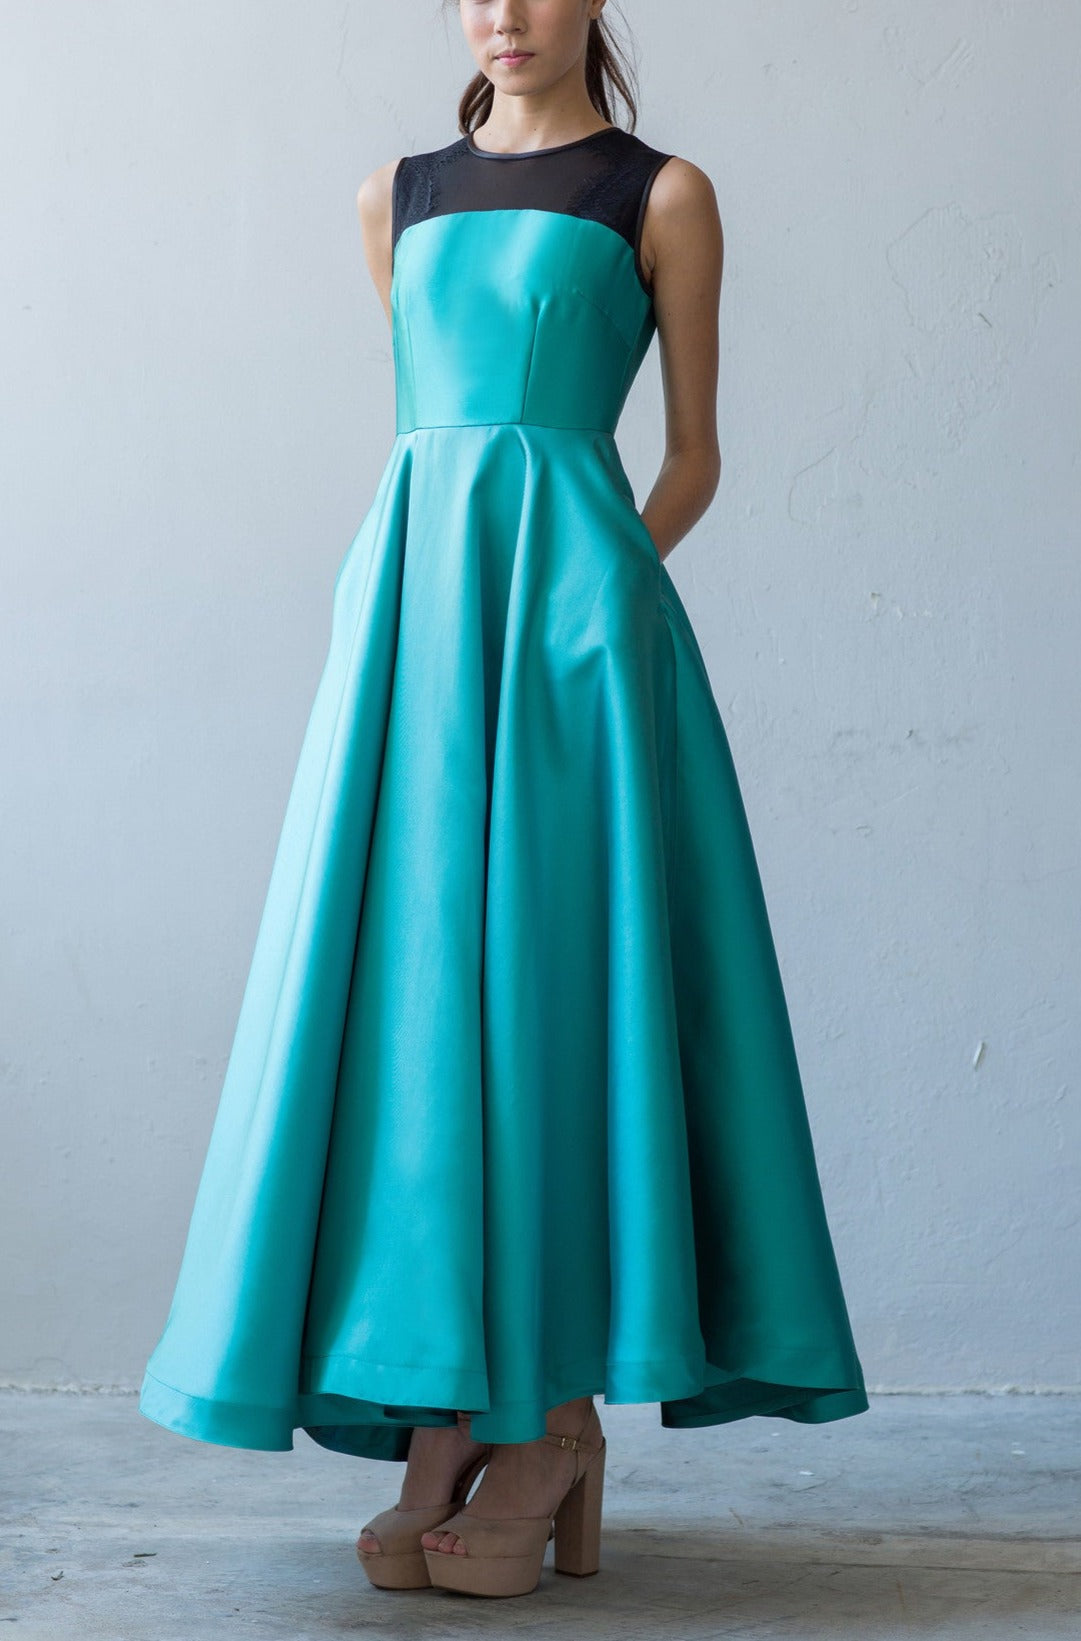 Fit and flare A-line gown in aqua